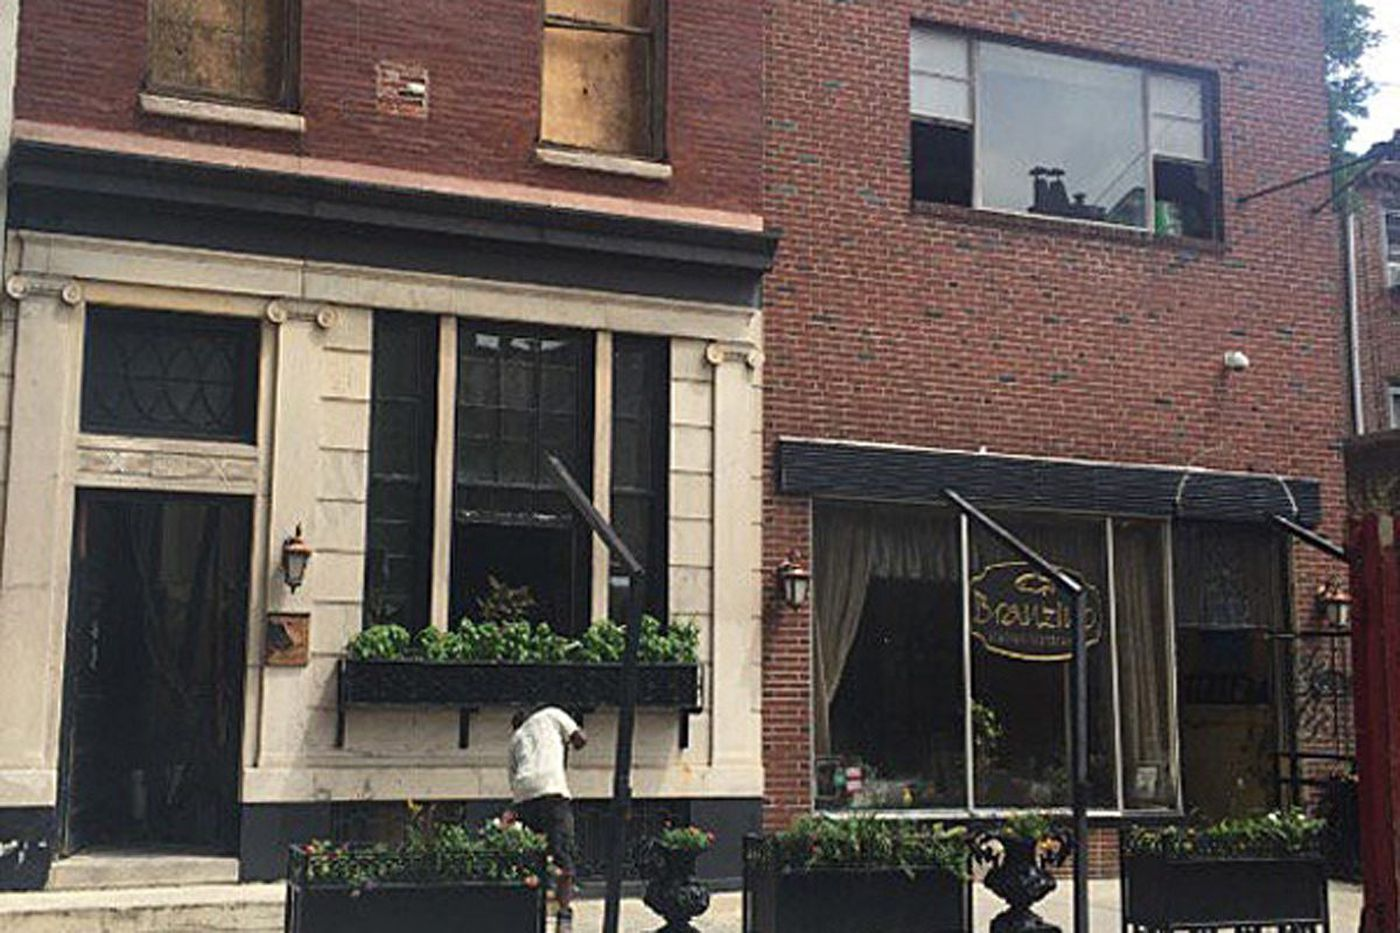 Branzino to return to 17th St., with a bar